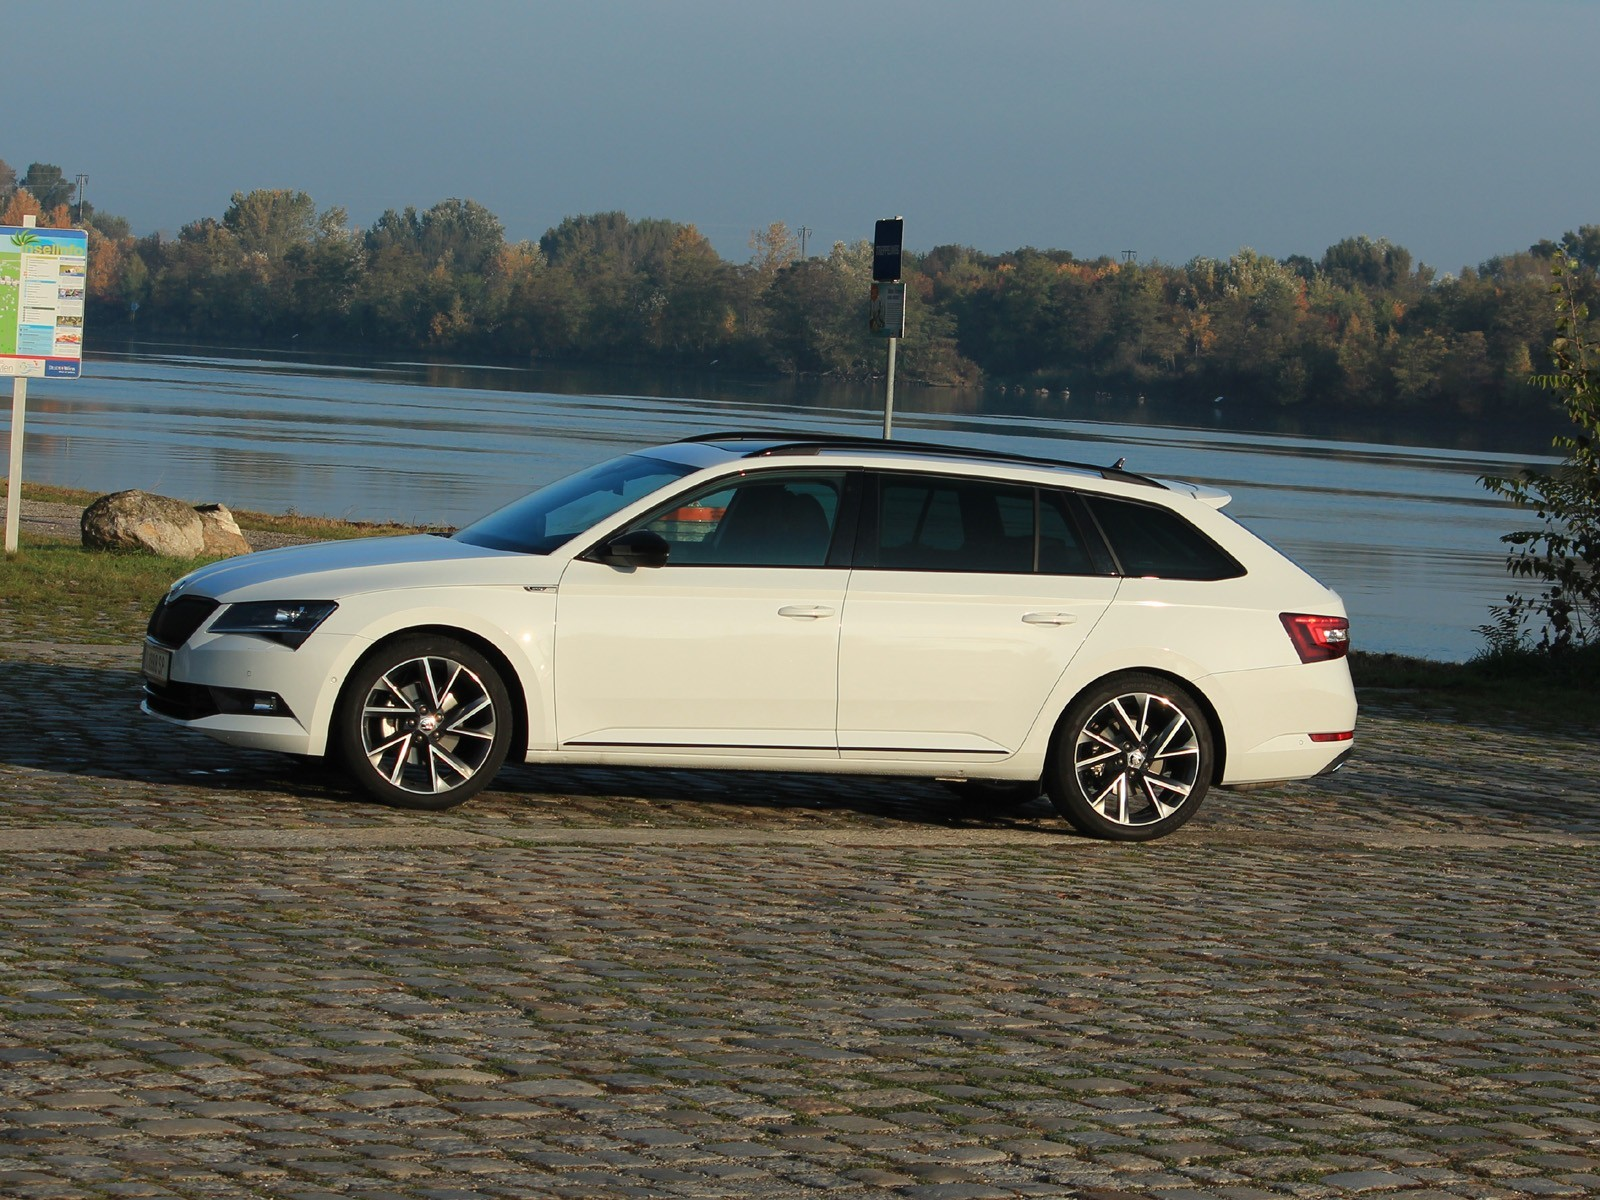 foto skoda superb combi sportline 220 ps tsi testbericht vom artikel skoda superb combi. Black Bedroom Furniture Sets. Home Design Ideas